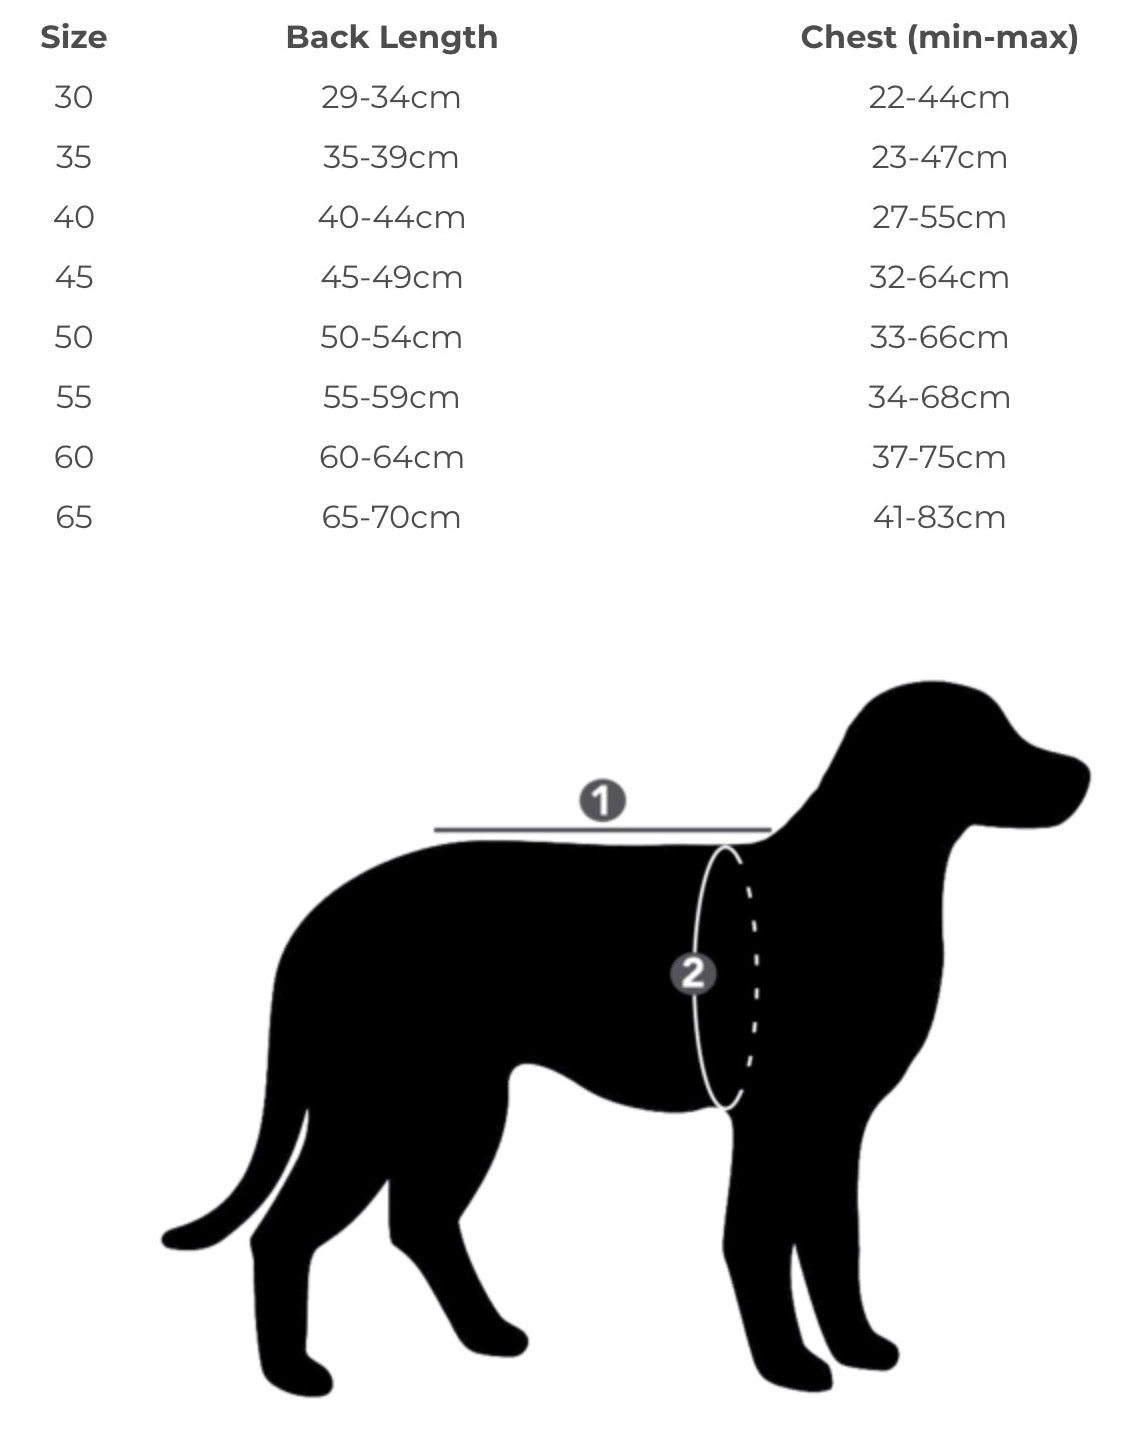 Rukka Hase Dog Raincoat Size Chart